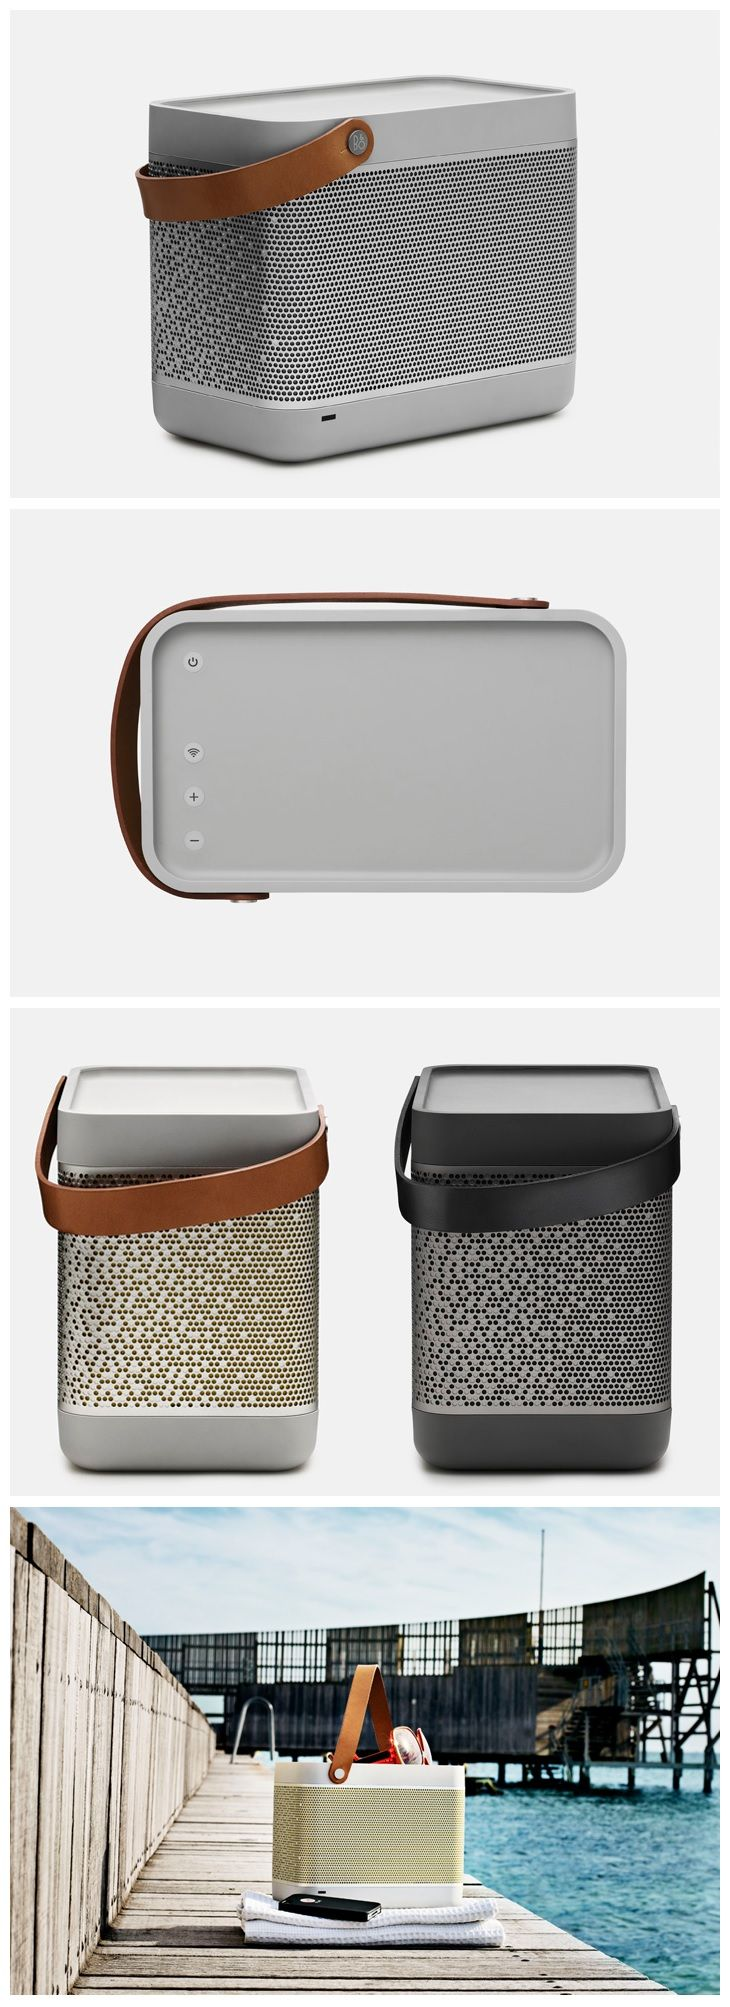 Bang & Olufsen Beolit 12 - A powerful and portable one-point music system that streams from AirPlay. | To get more updates on portable Bluetooth and Wireless speaker, follow Best Buy Portable Speakers (https://www.pinterest.com/bestbuyspeakers/)